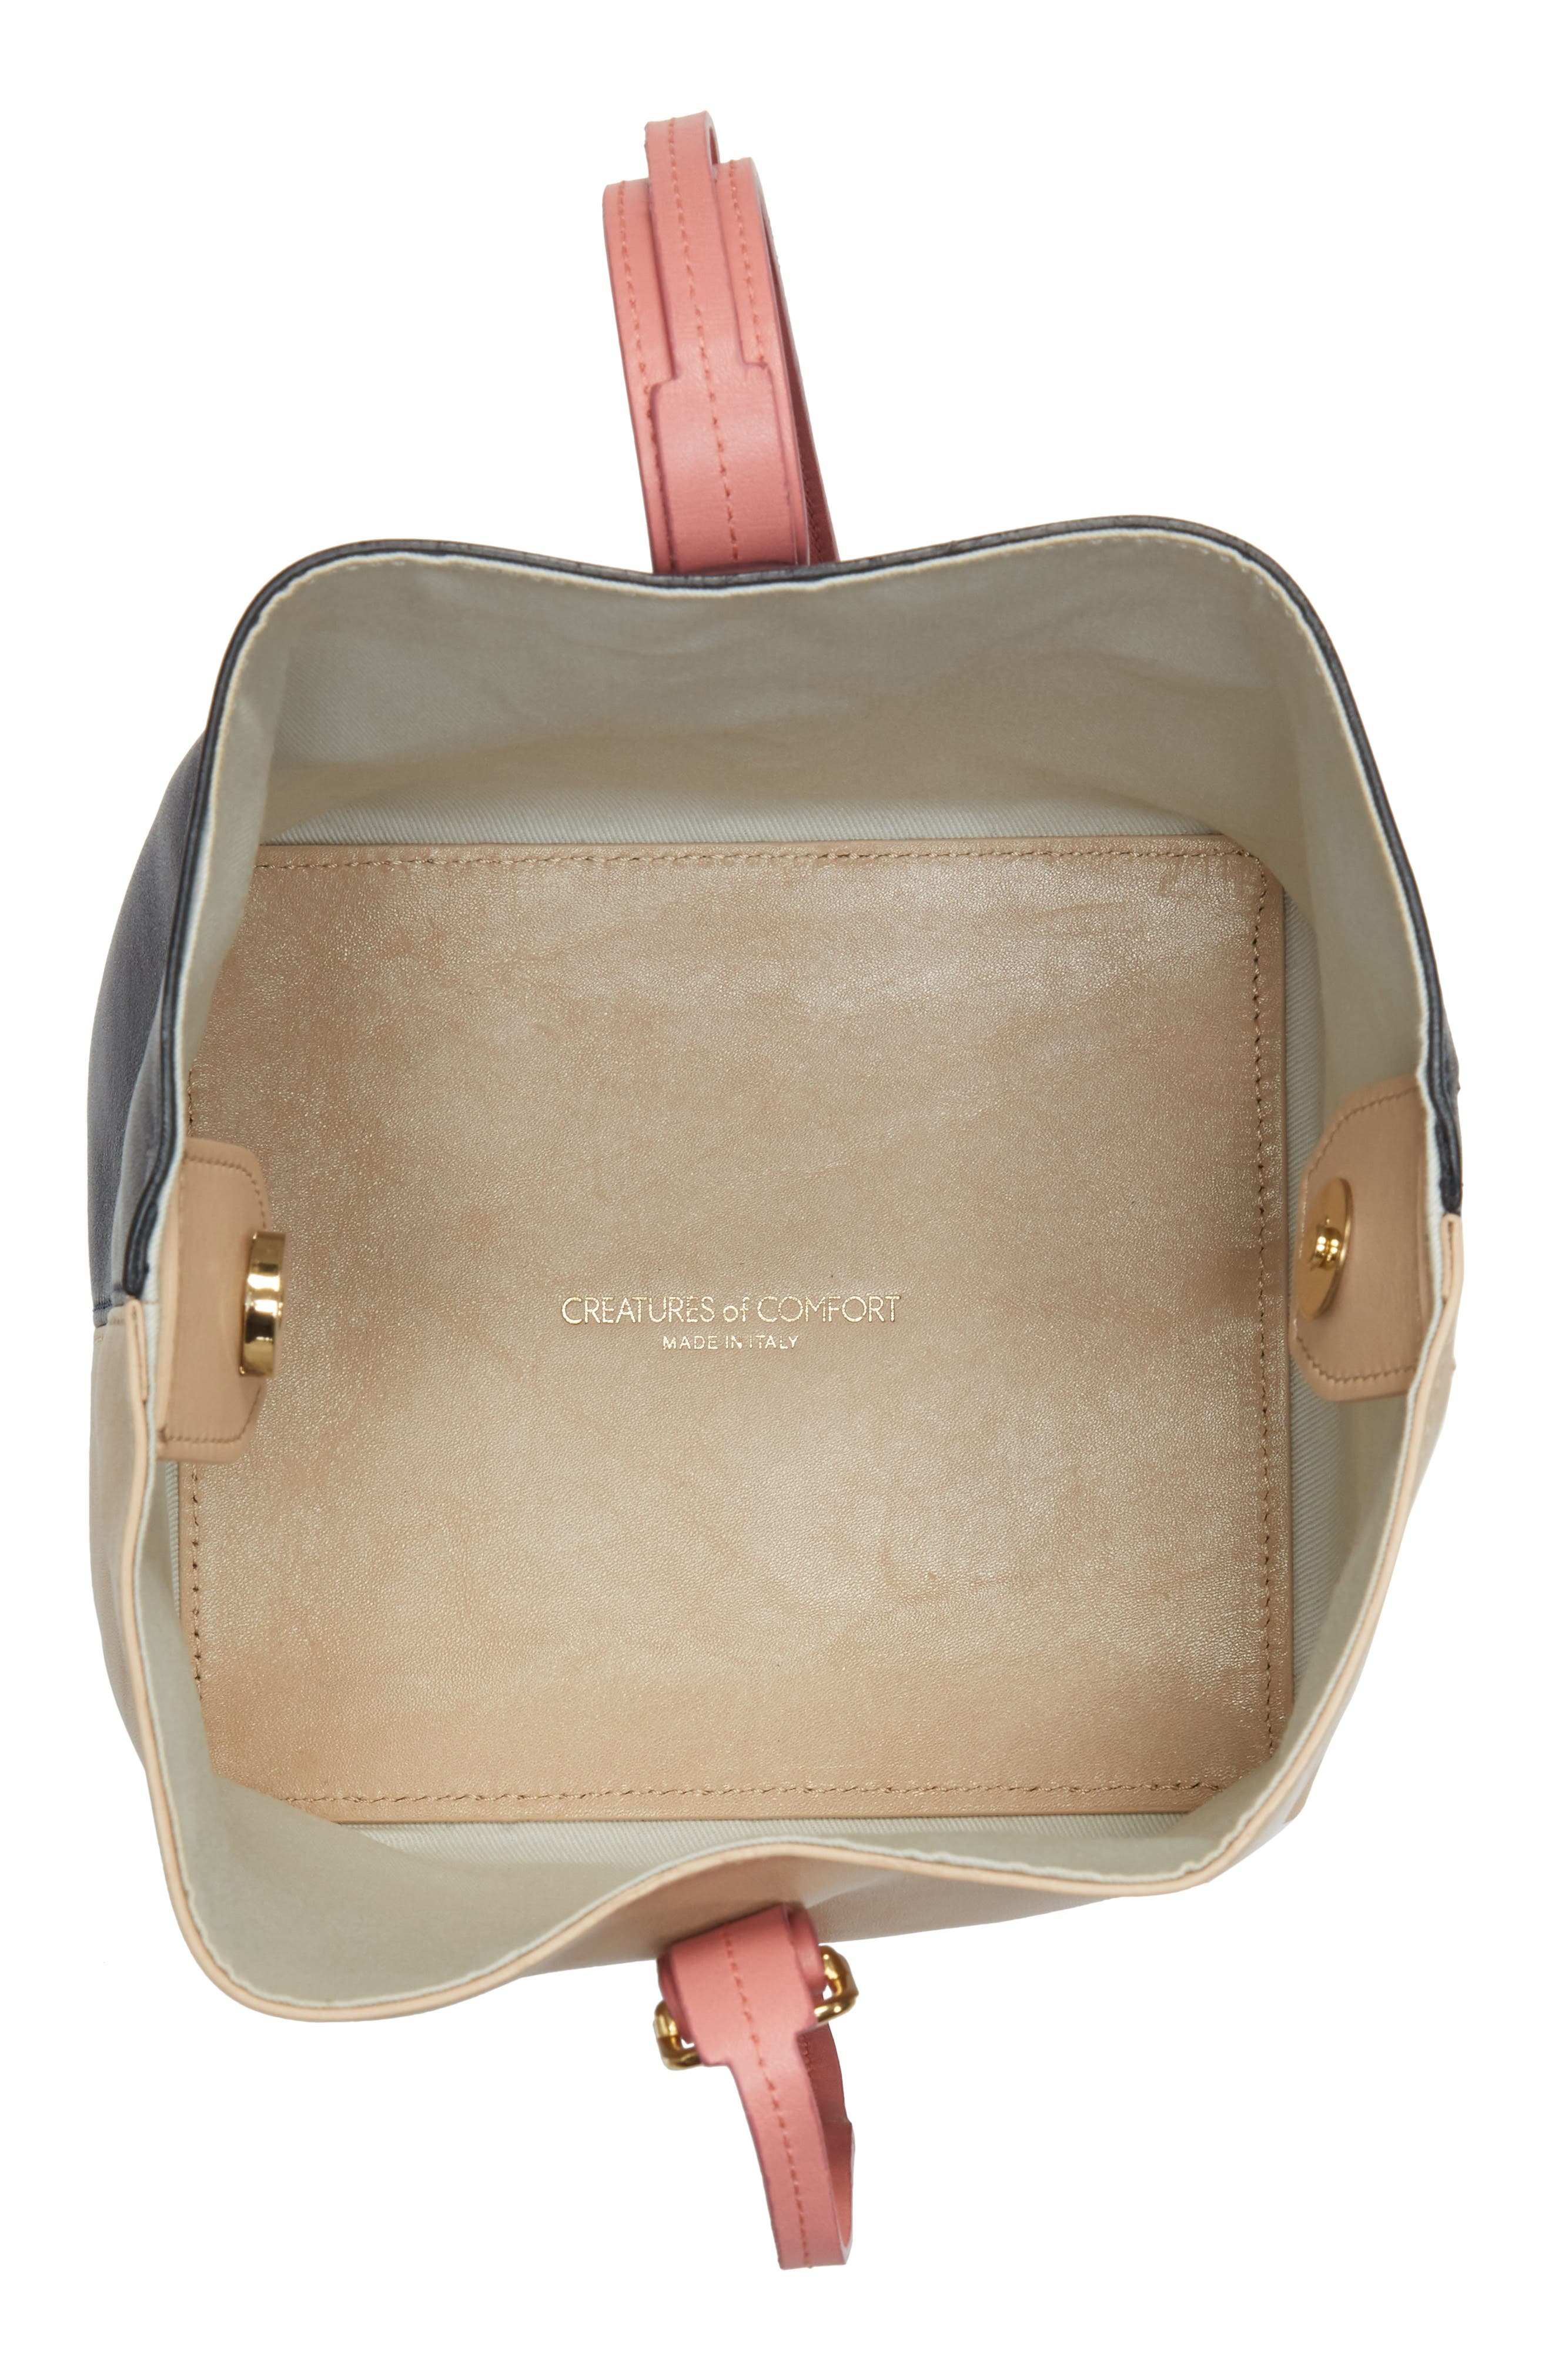 Small Apple Tricolor Leather Bag,                             Alternate thumbnail 4, color,                             Slate/ Amaryllis/ Cappuccino